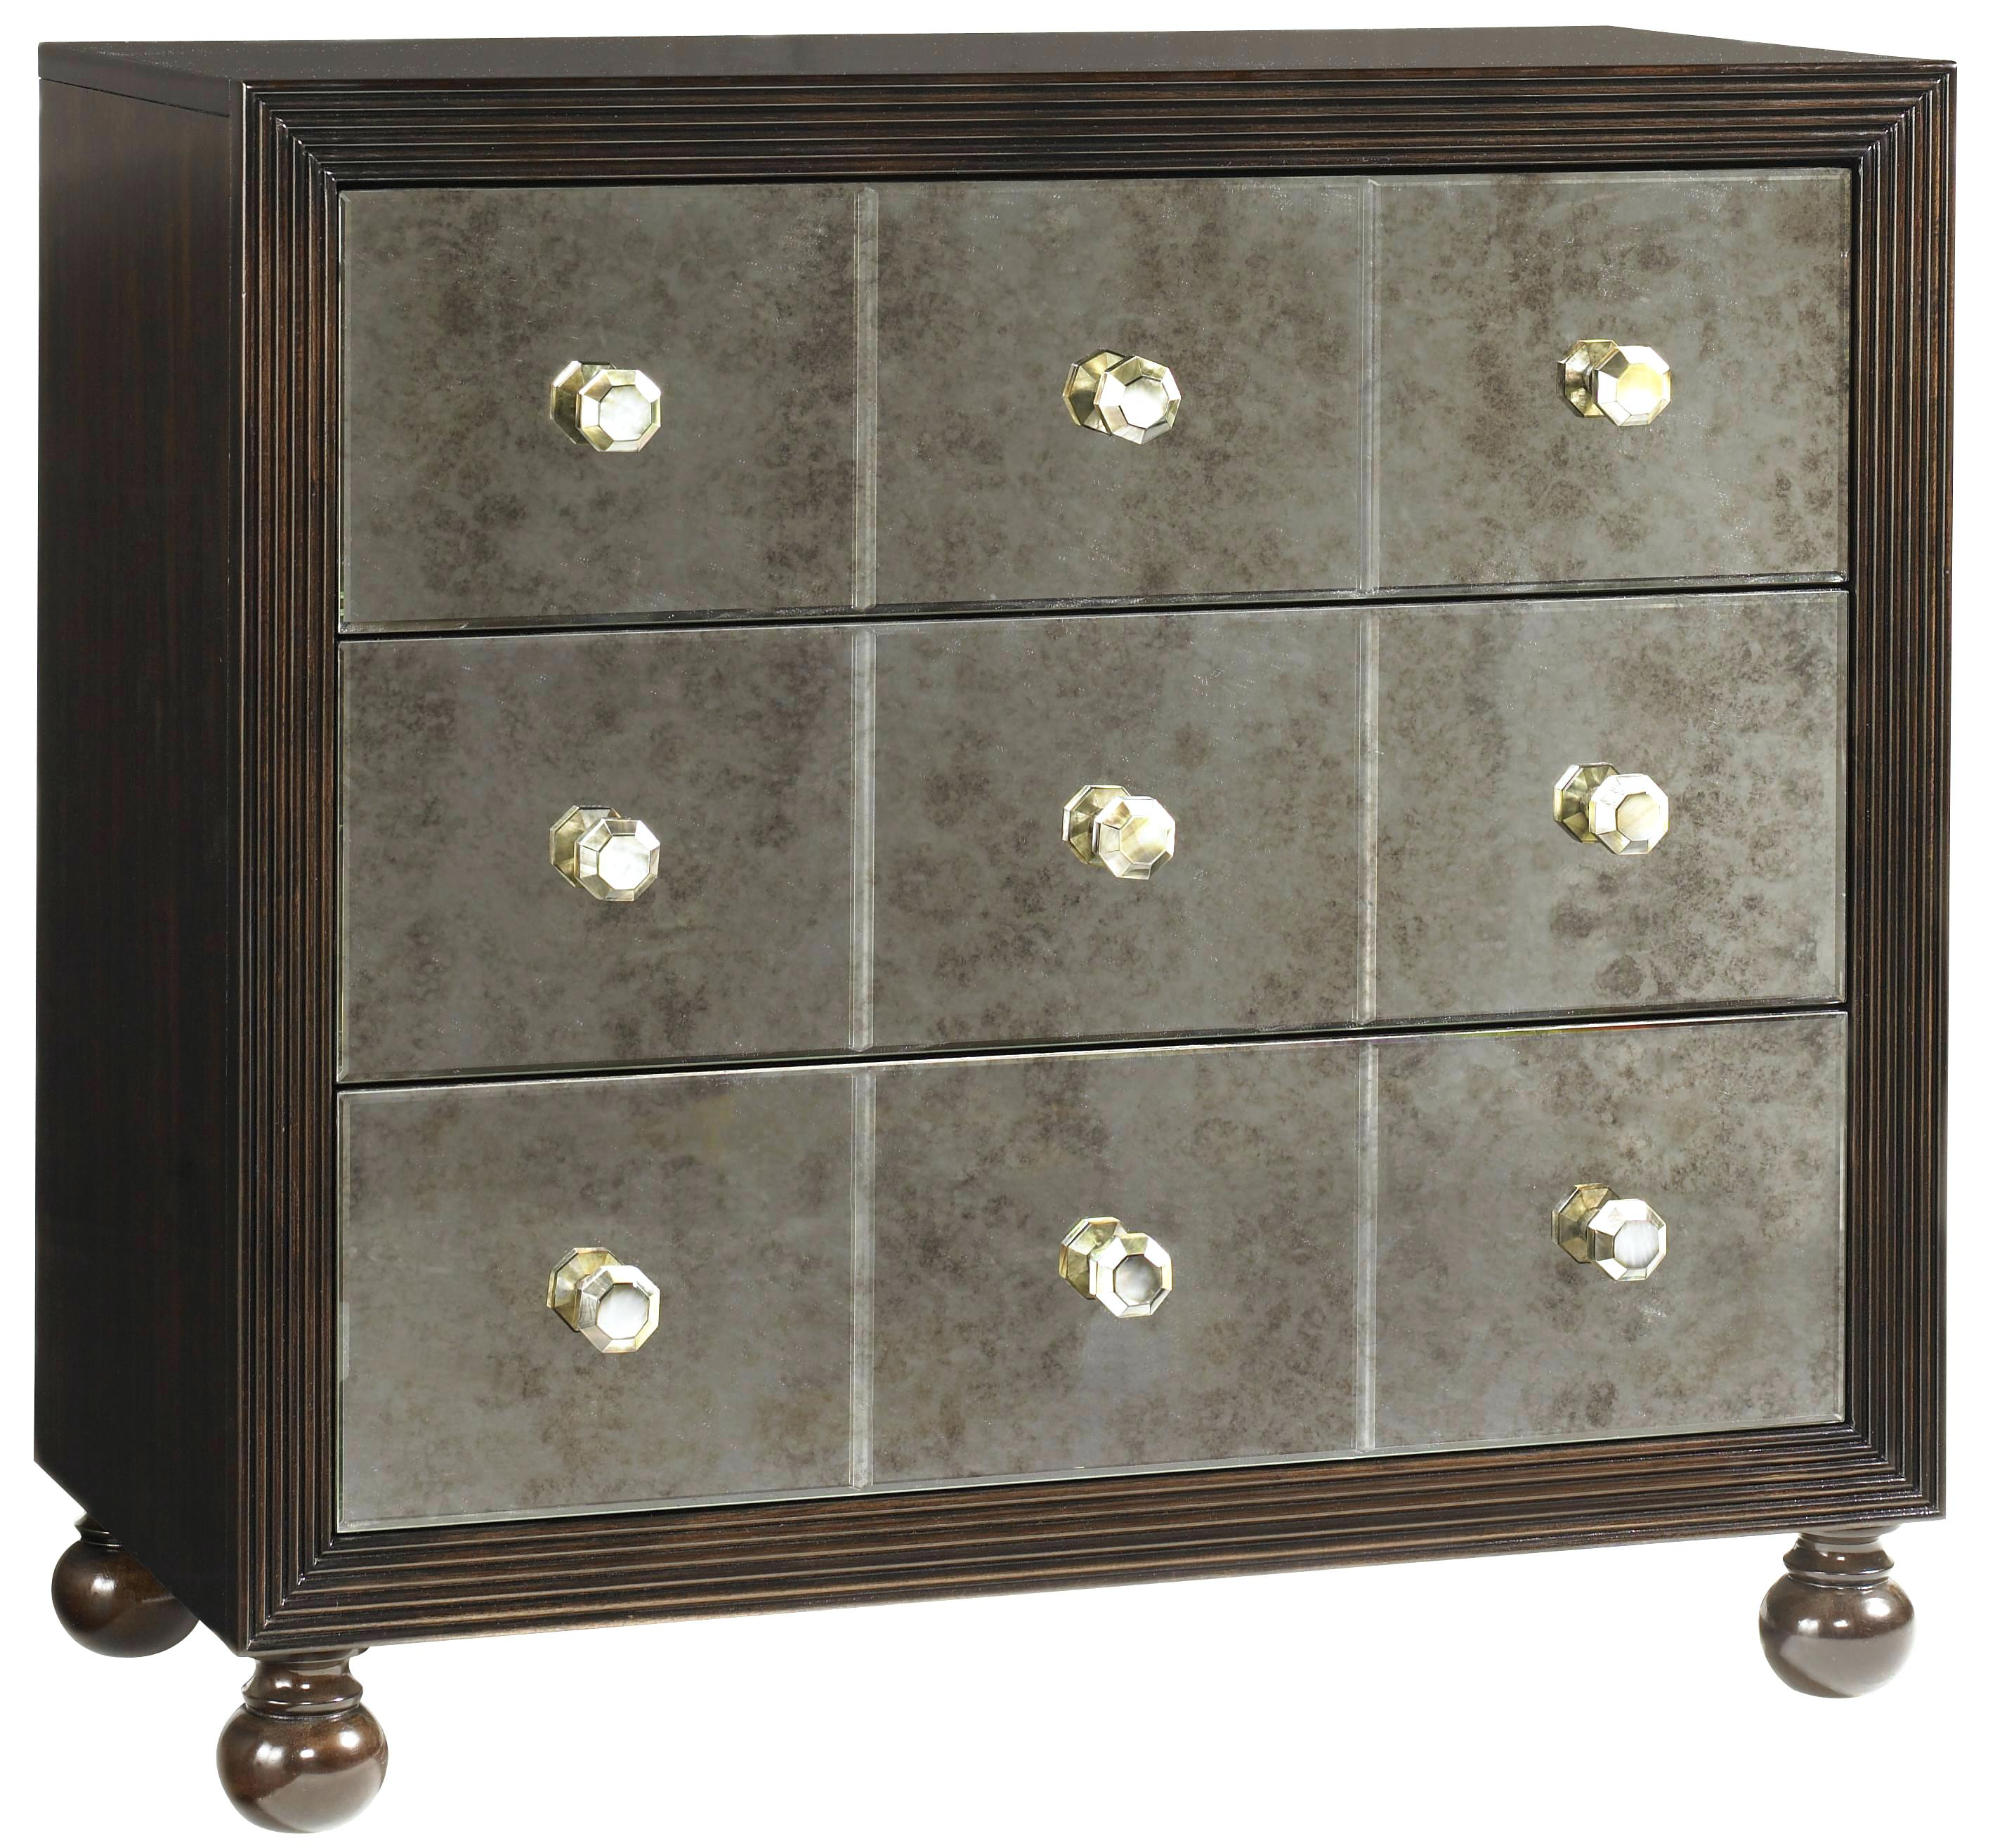 three drawer mirrored nightstand treasure trove accents silver and home royal starlight with shell hardware antique accent end table ikea wooden storage bench small pine college